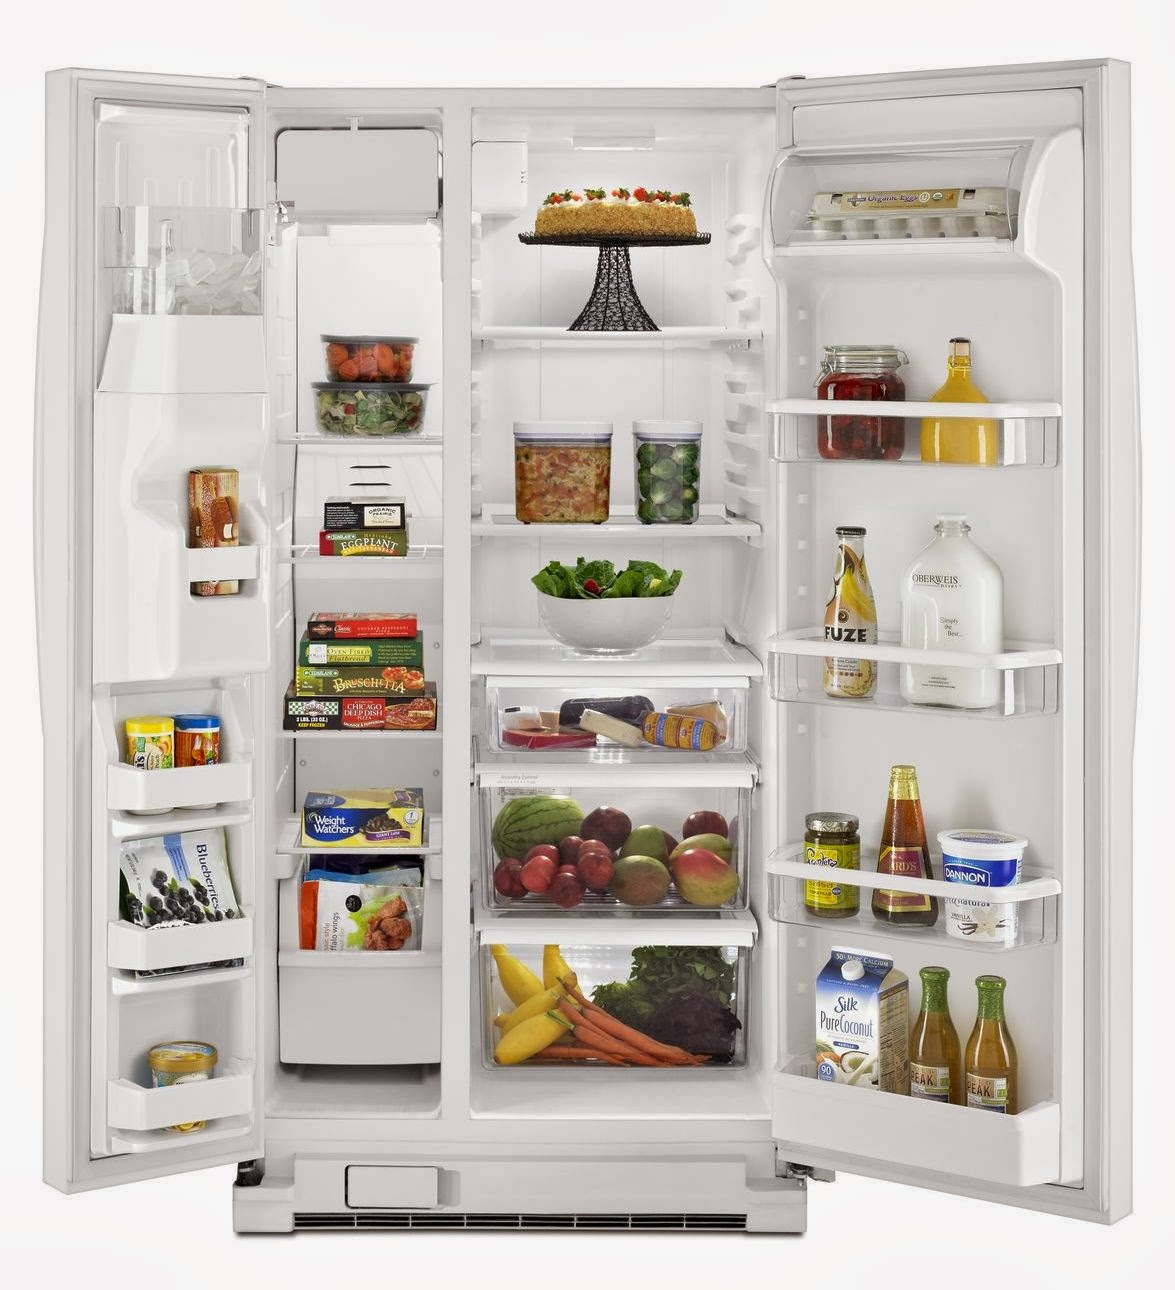 whirlpool refrigerator brand whirlpool 22 cf side by side refrigerator. Black Bedroom Furniture Sets. Home Design Ideas